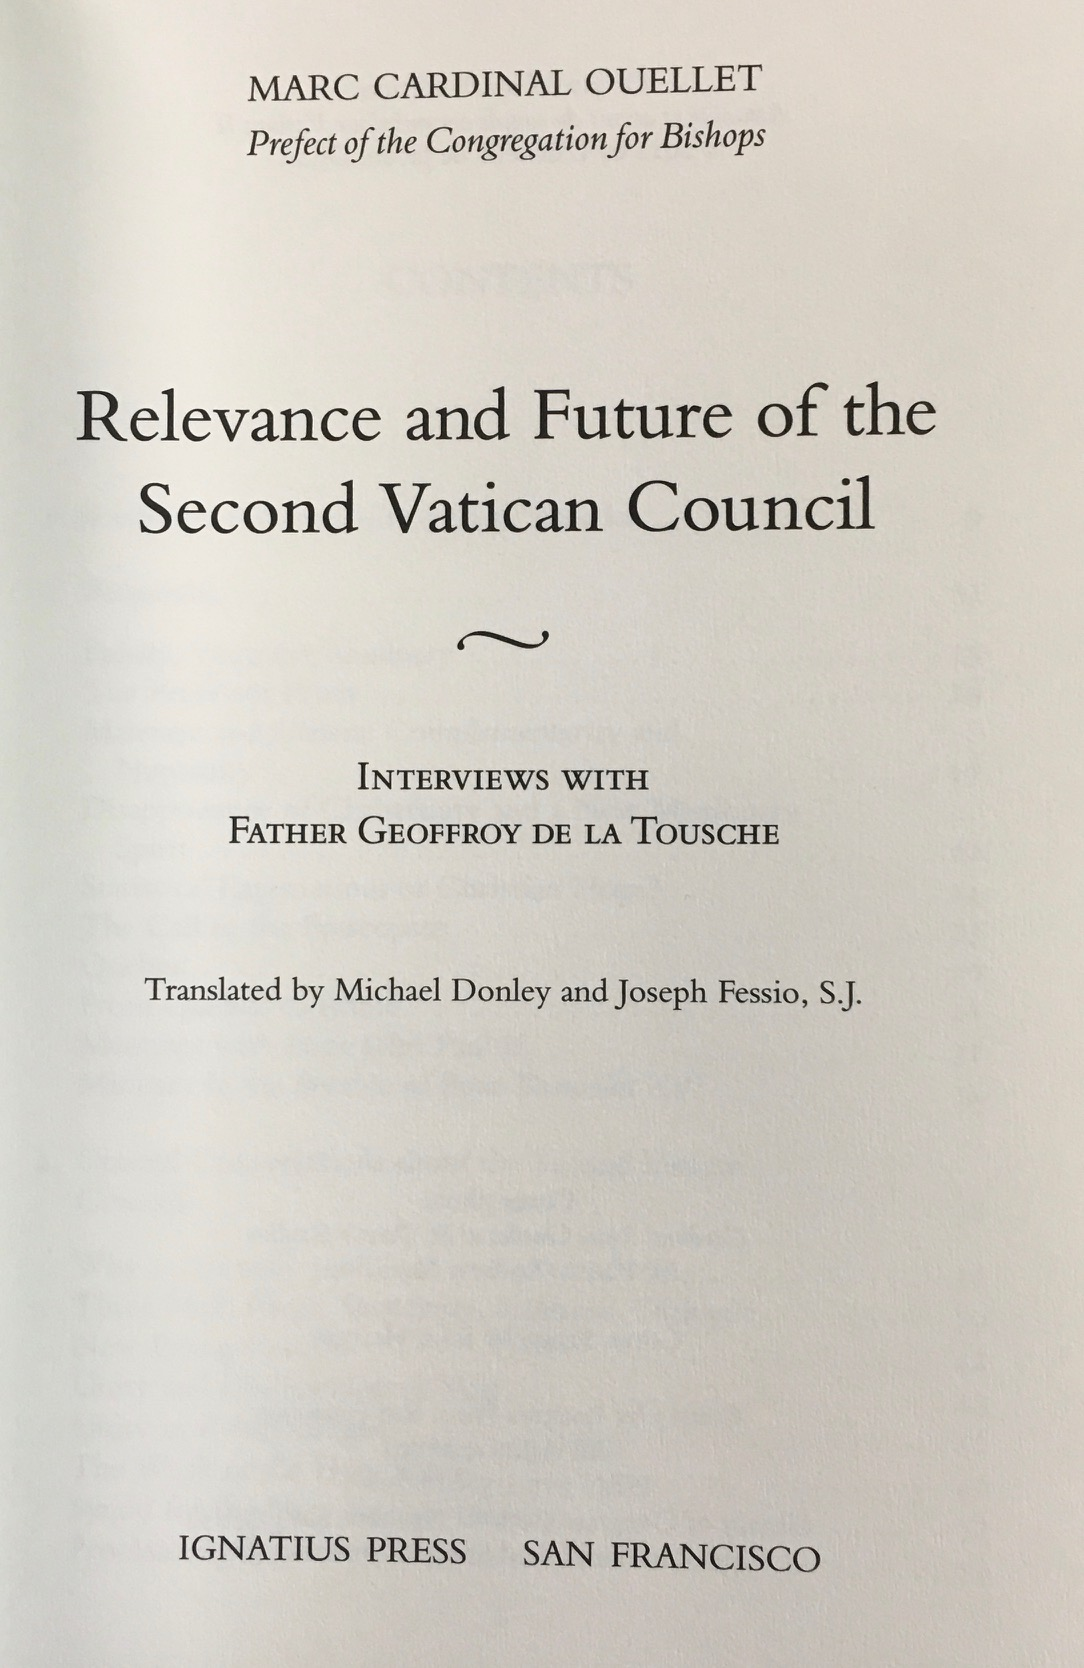 Image for The Relevance and Future of the Second Vatican Council